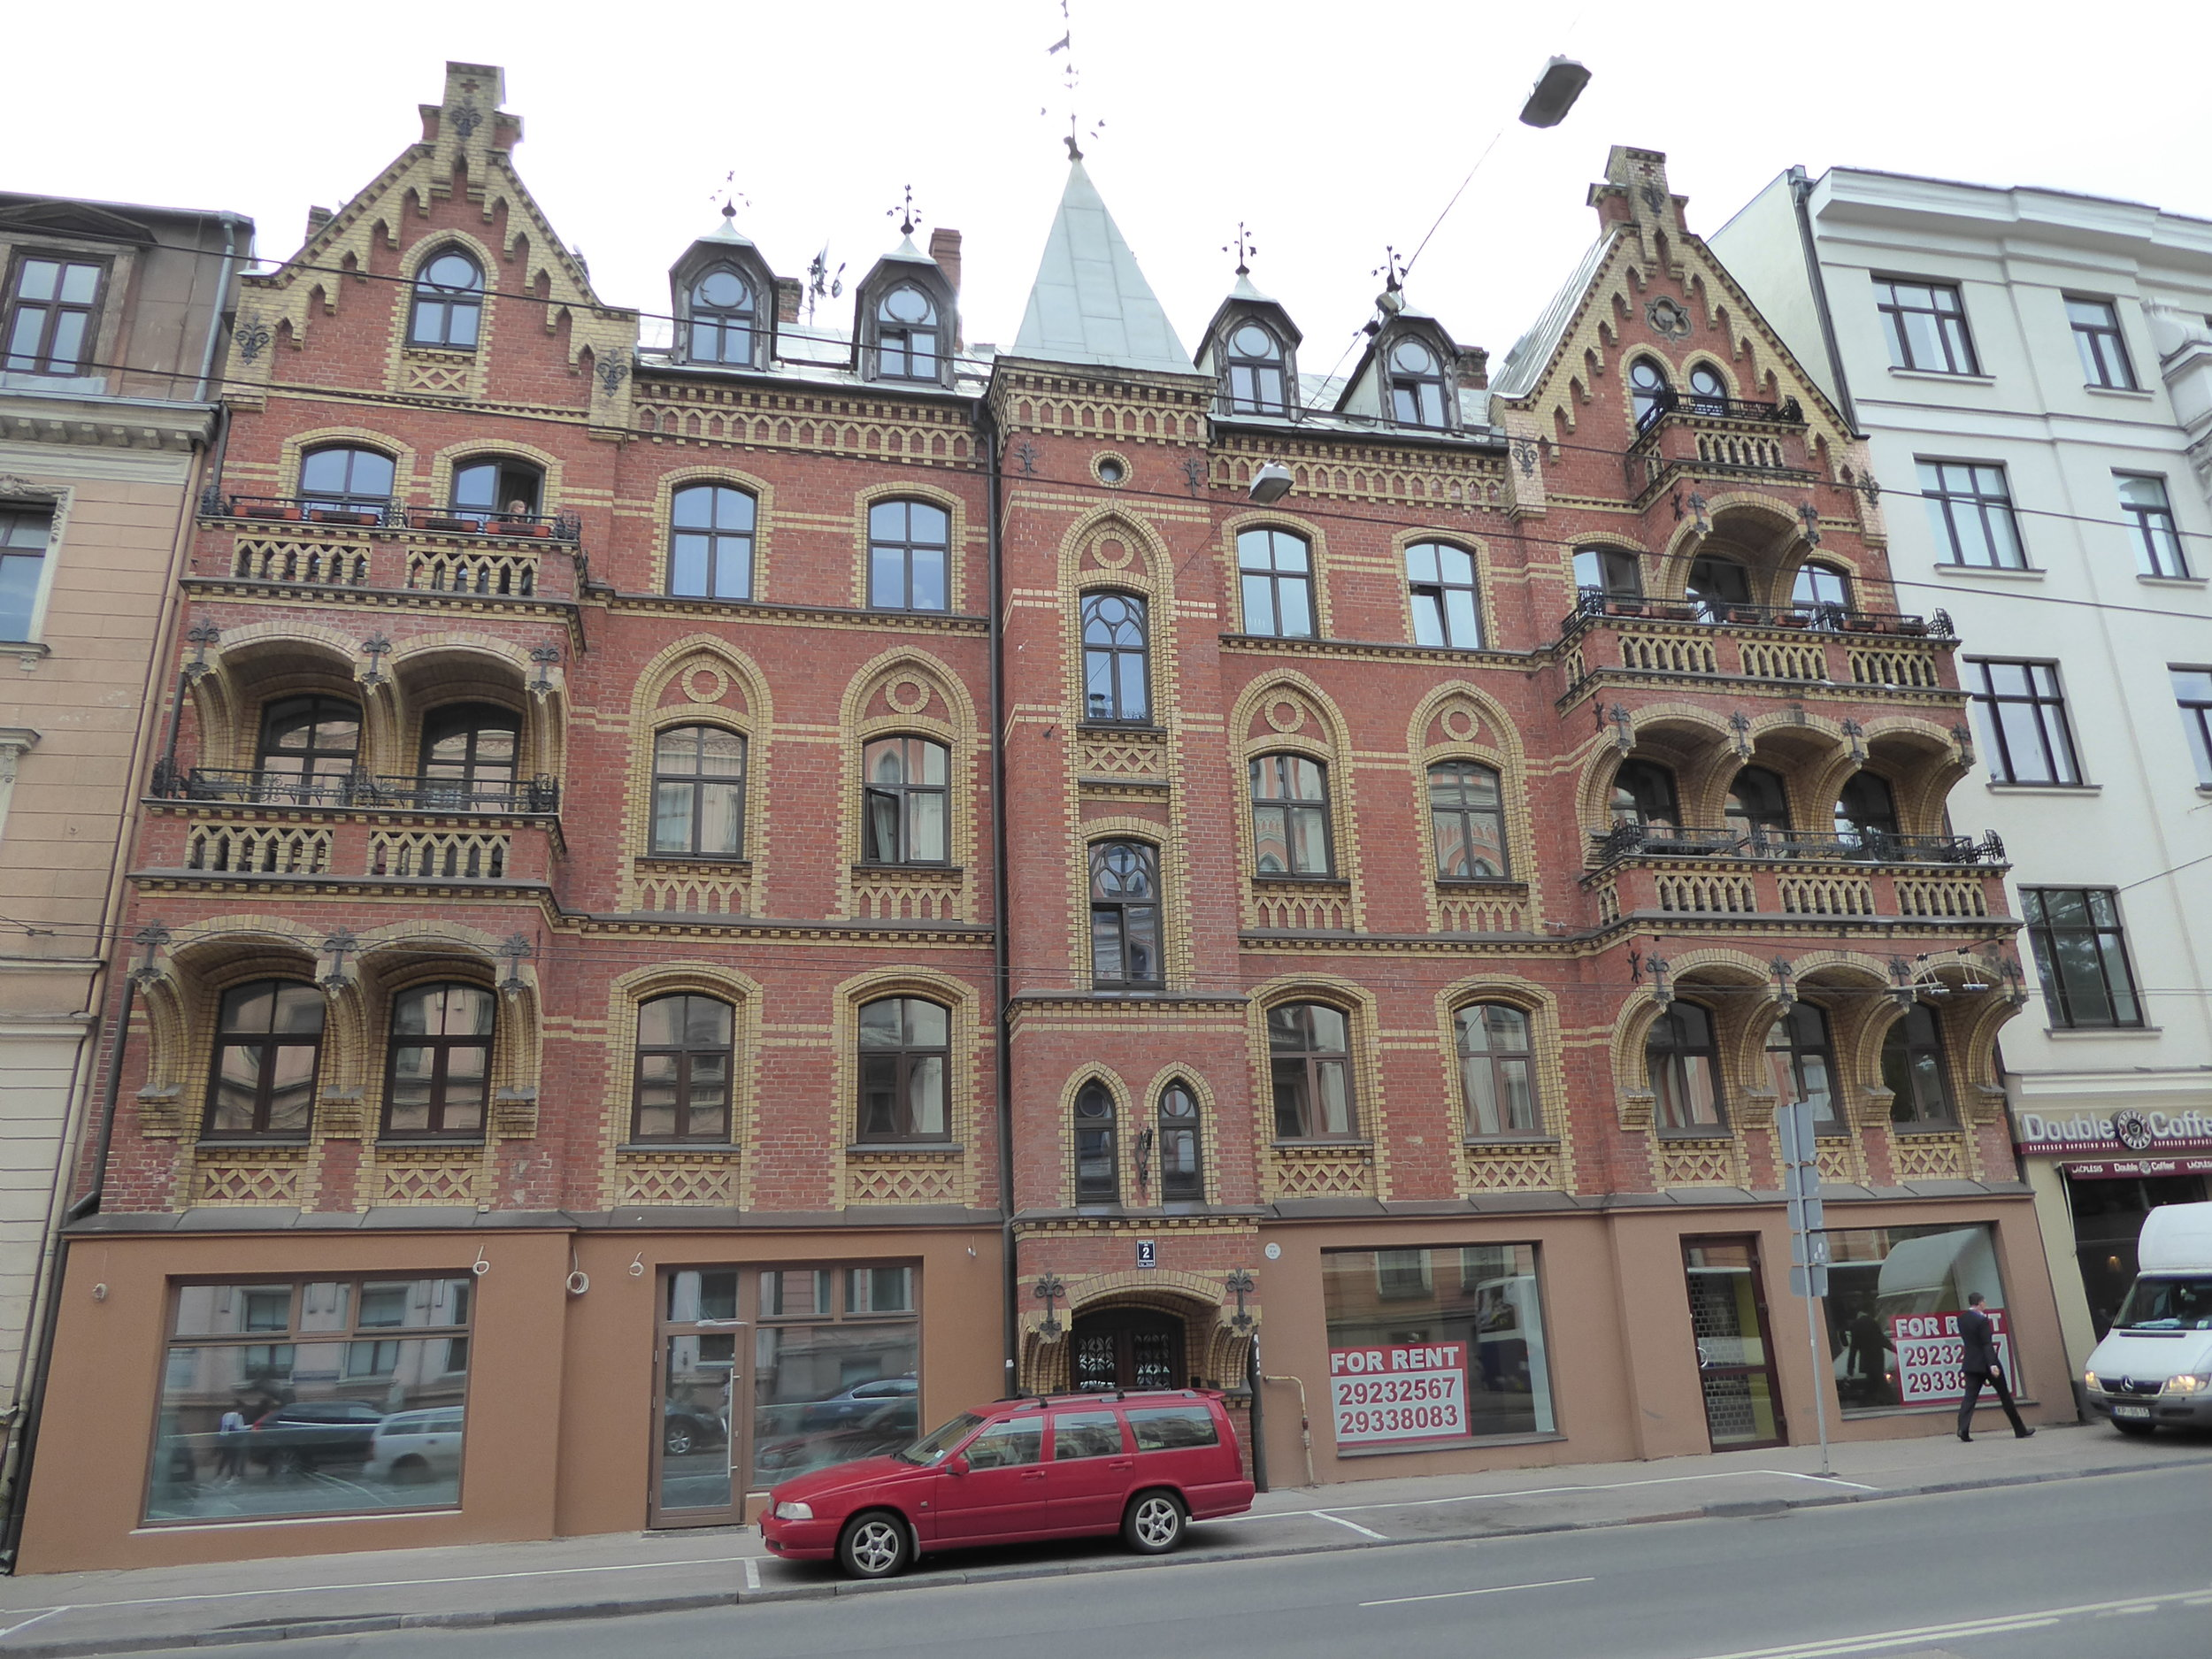 A morning walking tour takes us past these art nouveau style buildings in Riga.